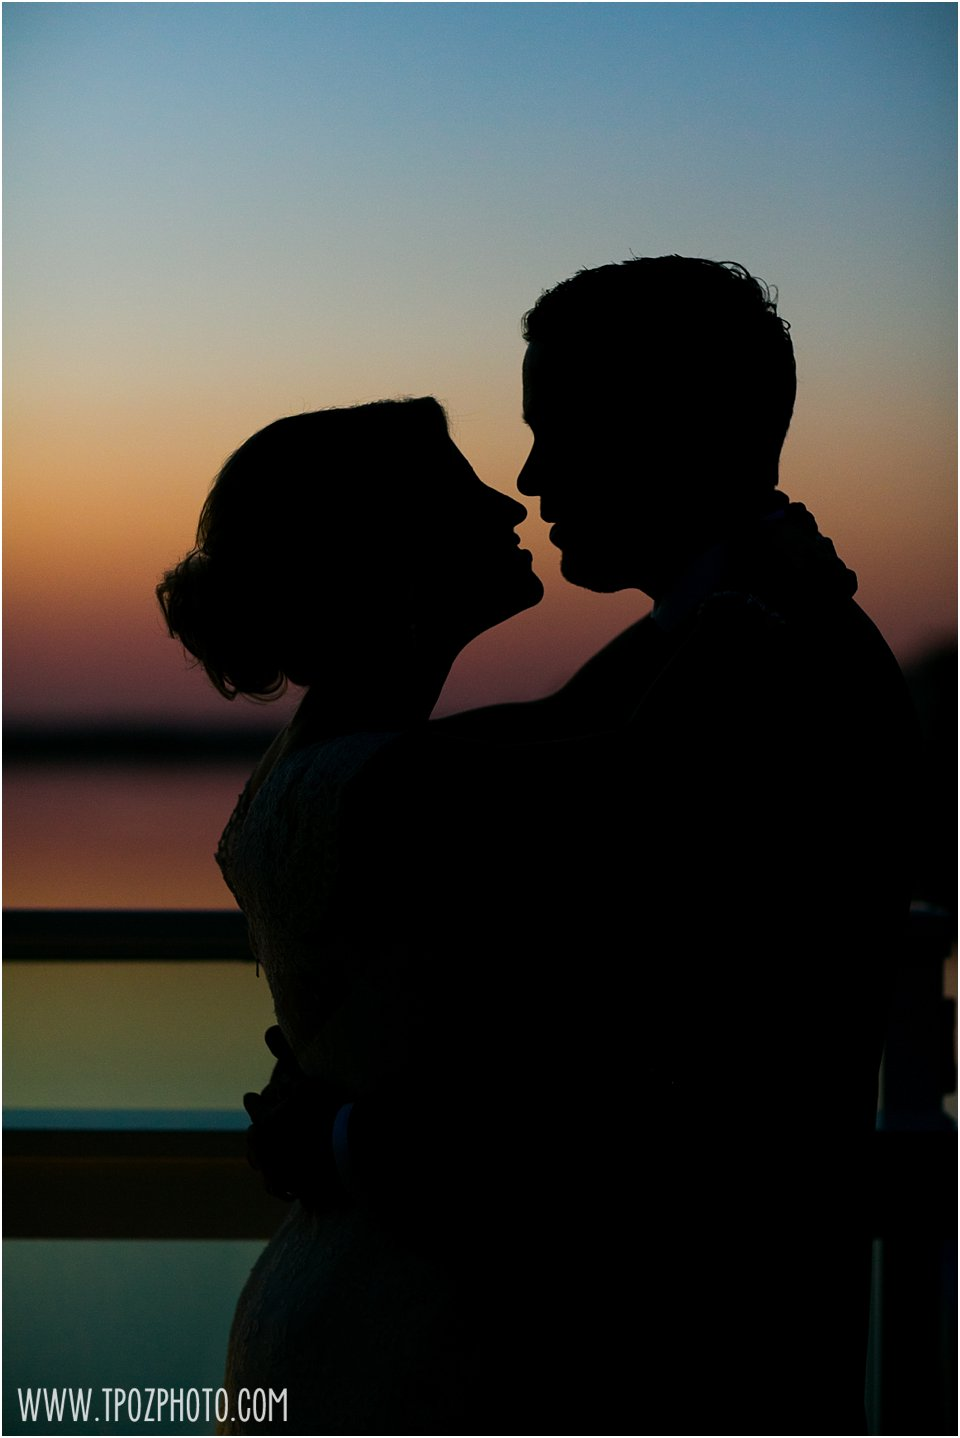 Sunset Photos - The Reeds at Shelter Haven Wedding Photos